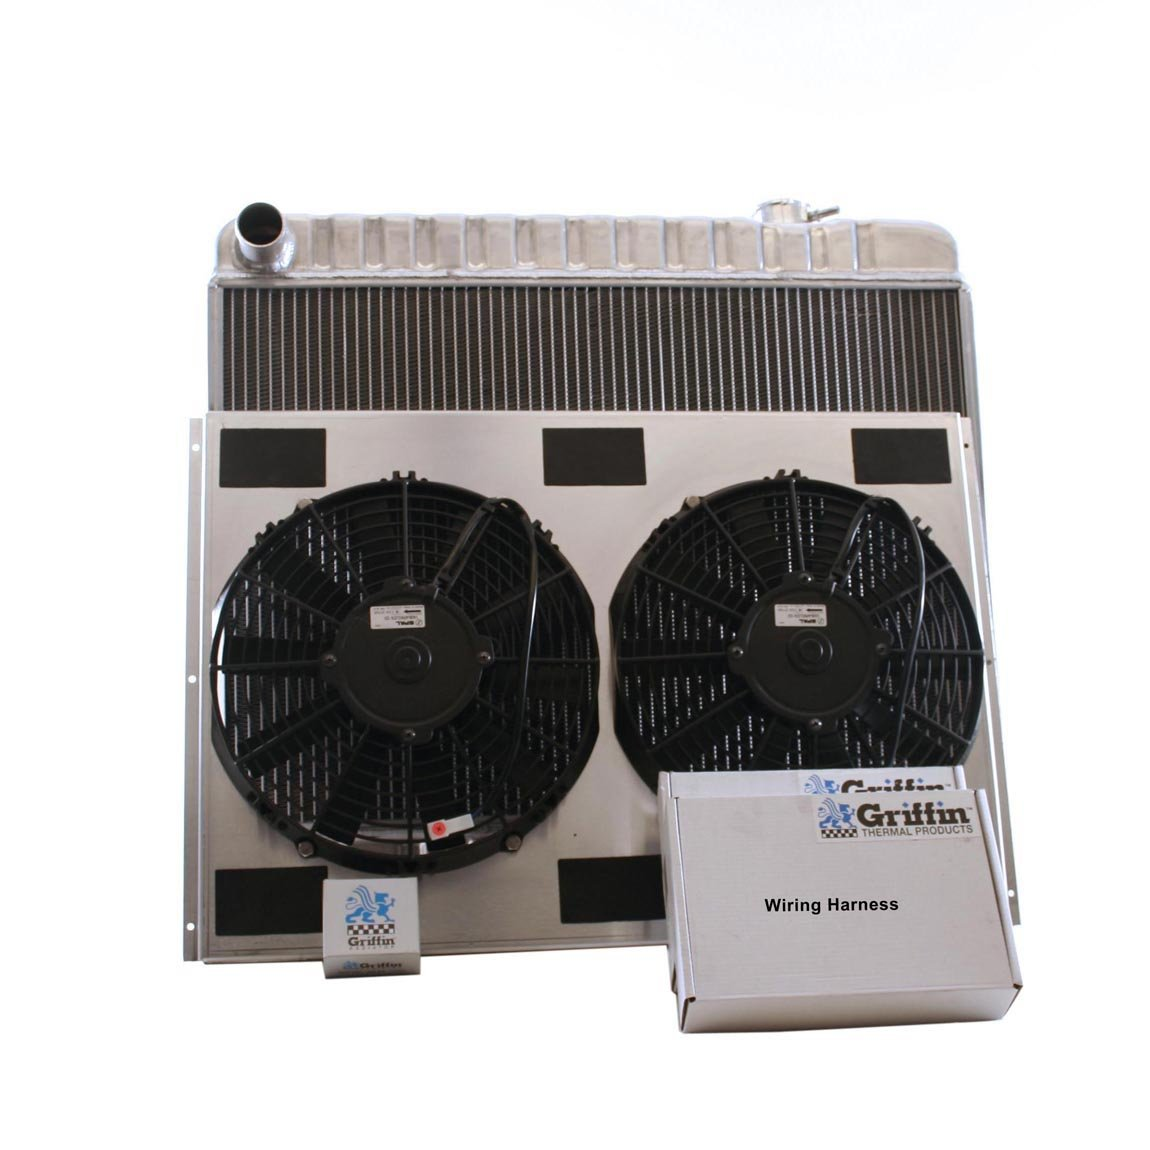 Griffin Radiator CU-00105 ComboUnit Radiator and Electric Fan Kit